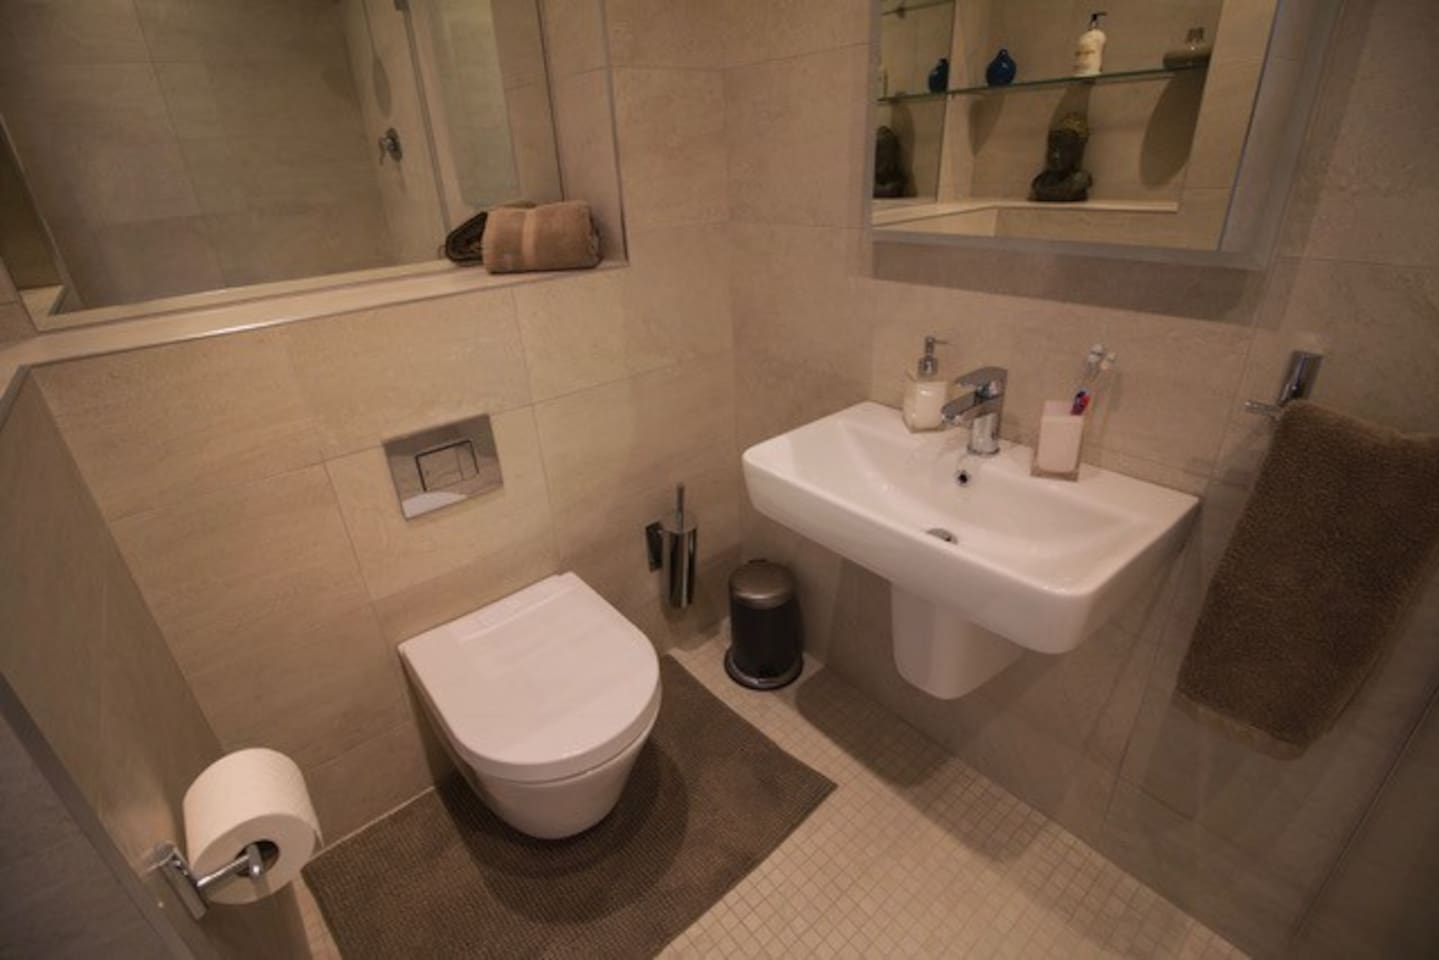 Bathroom Sinks Galway luxury galway city penthouse - apartments for rent in galway